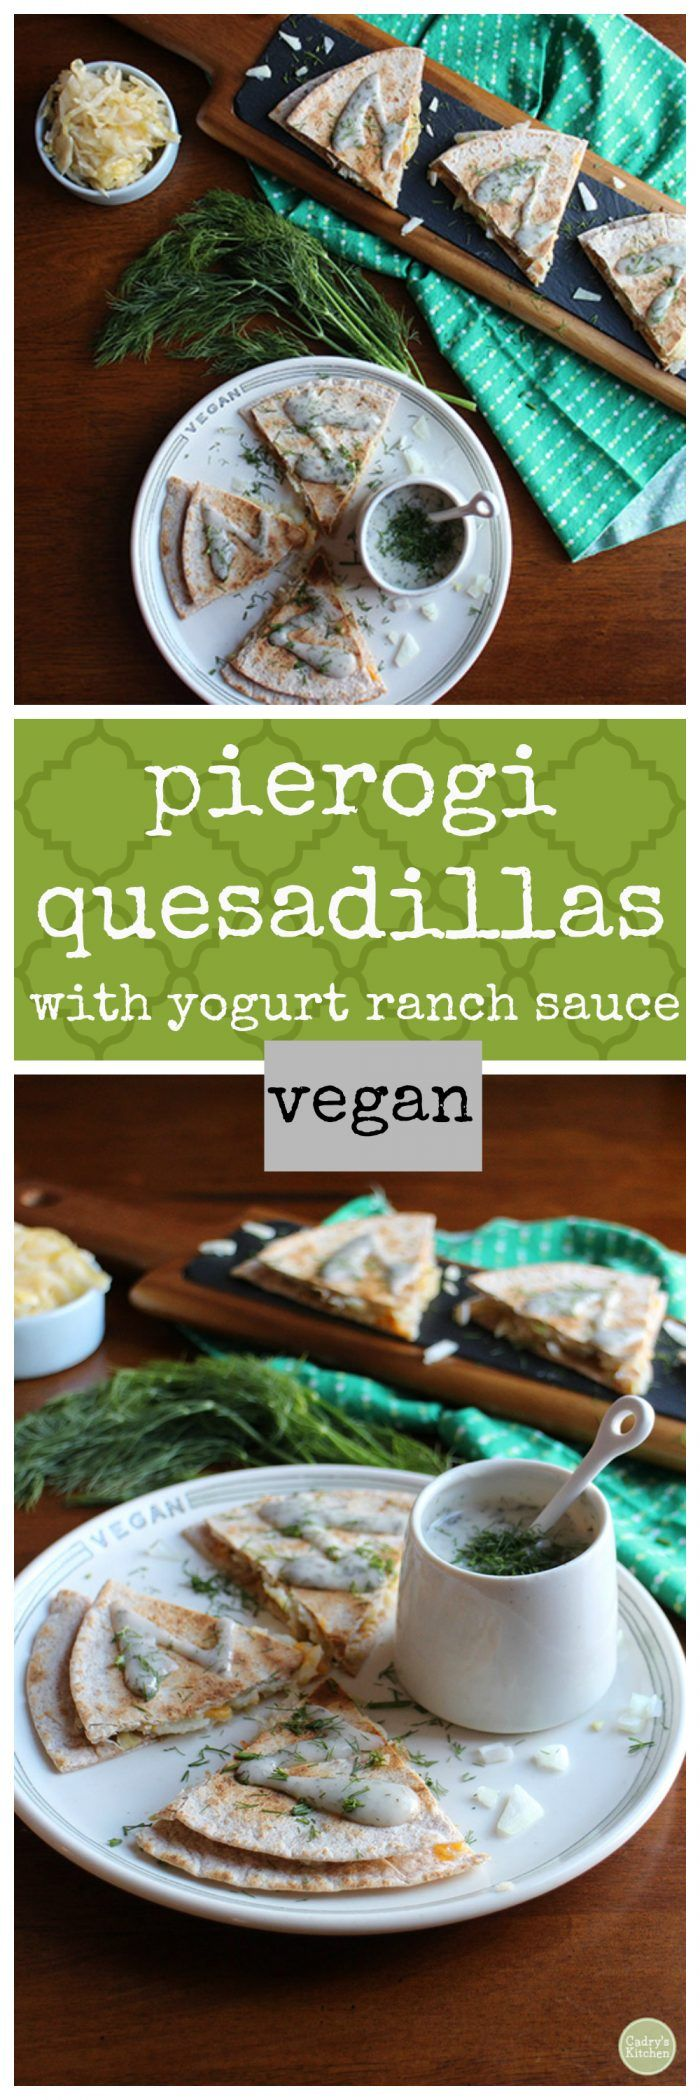 This vegan quesadilla is stuffed with all of the pierogi flavors you crave. Potatoes with onions, melty non-dairy cheese, and tangy sauerkraut is encased in a tortilla and served with yogurt ranch dip. It's the perfect party crowd pleaser. #vegan #pierogi #quesadilla #appetizer #partyfood via @cadryskitchen